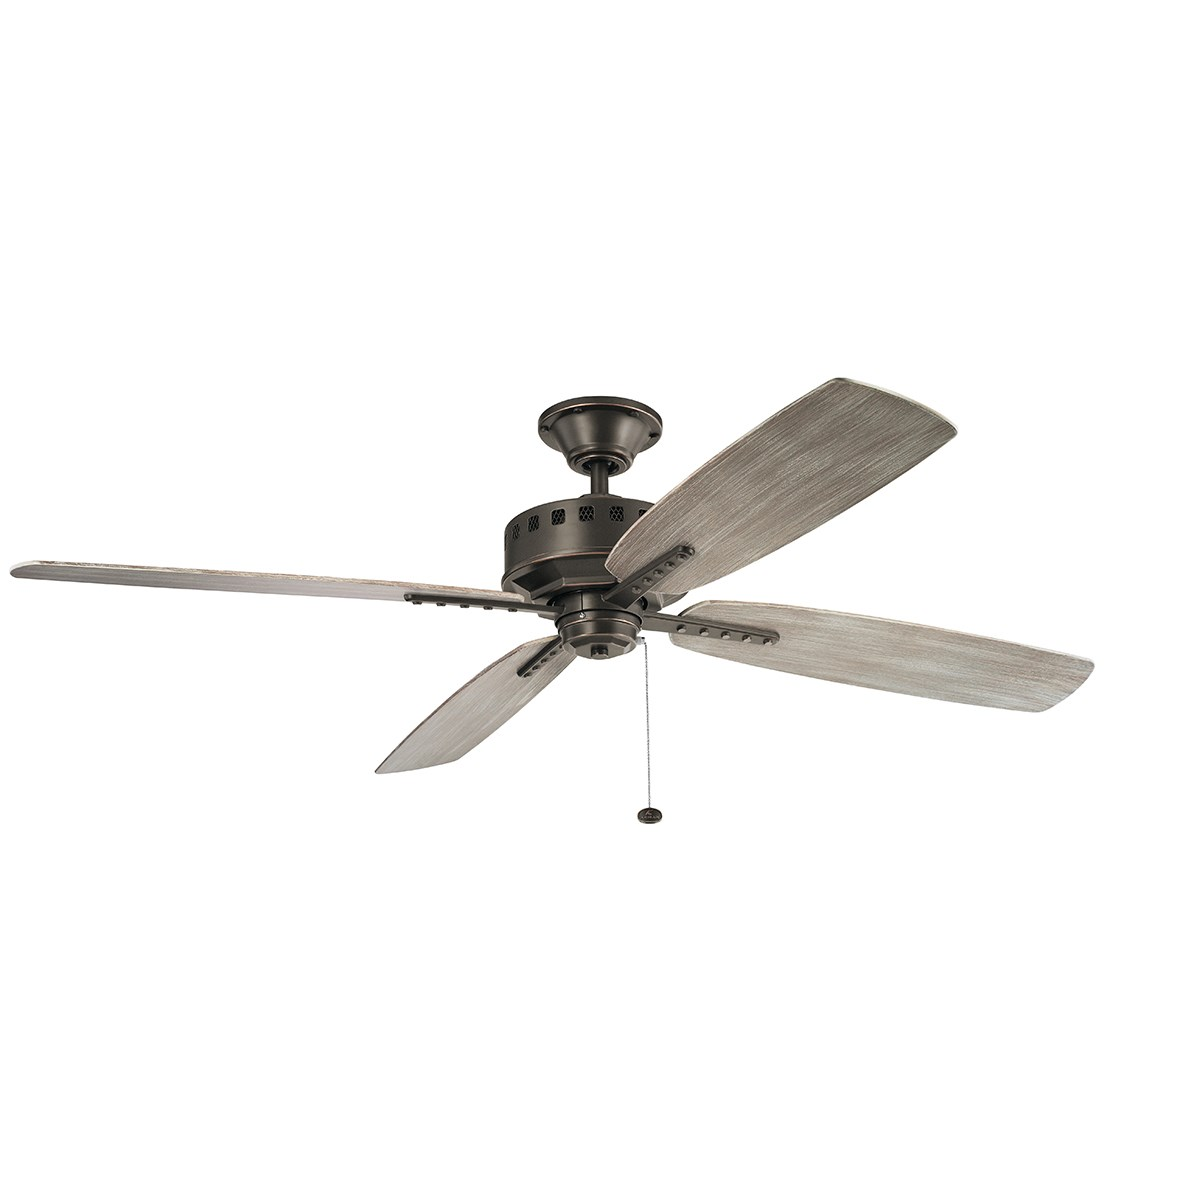 "Eads Patio XL 65"" Fan Olde Bronze®"